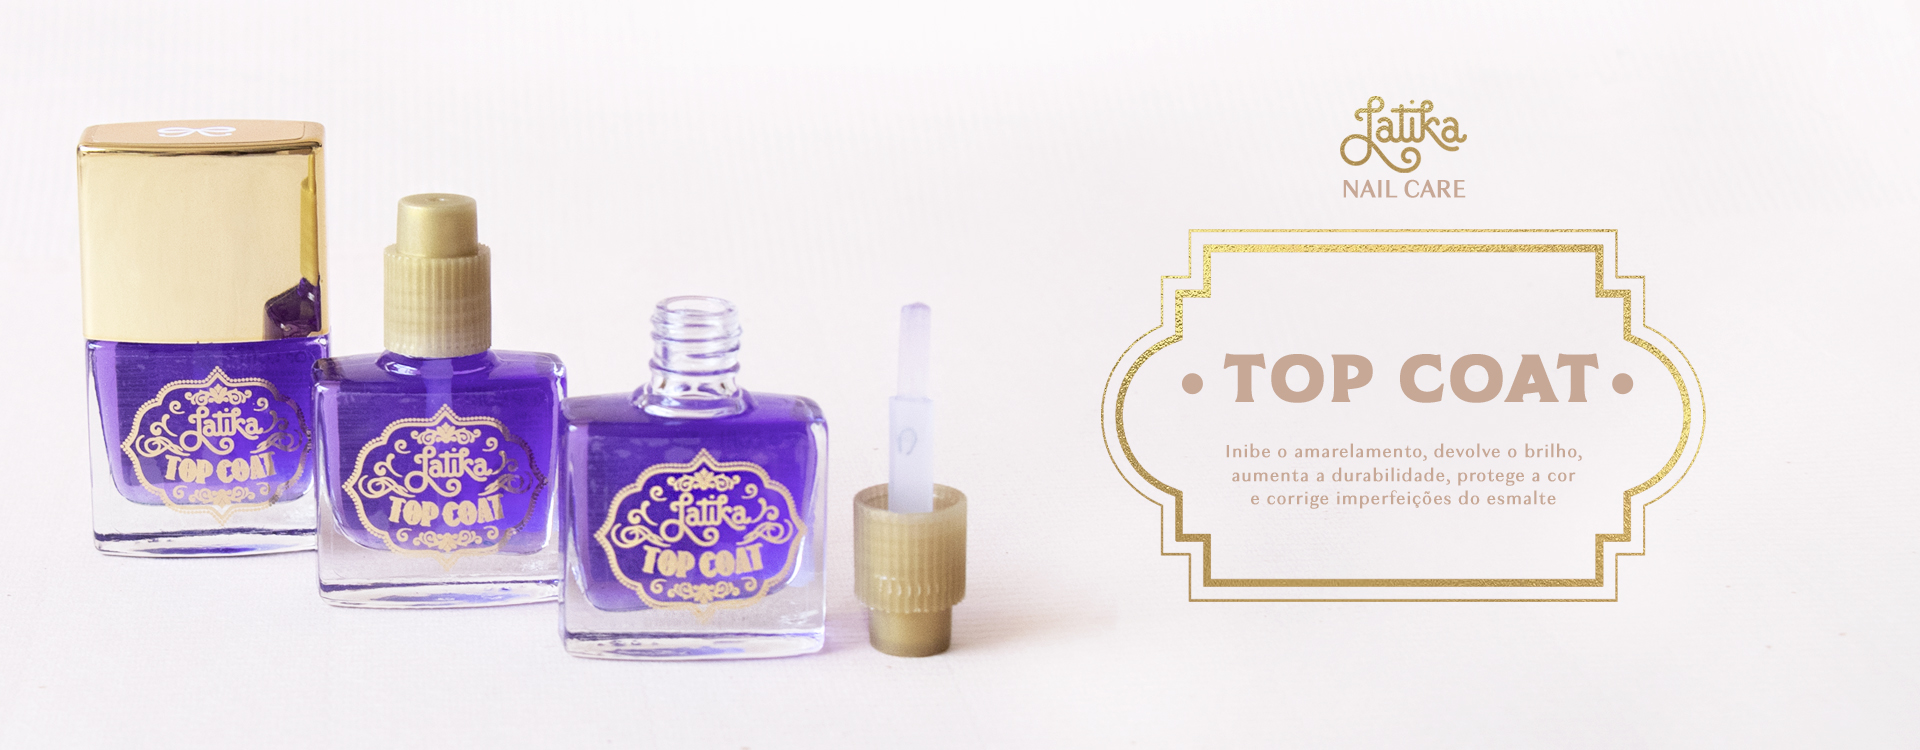 Nail Care- TOP COAT Desktop